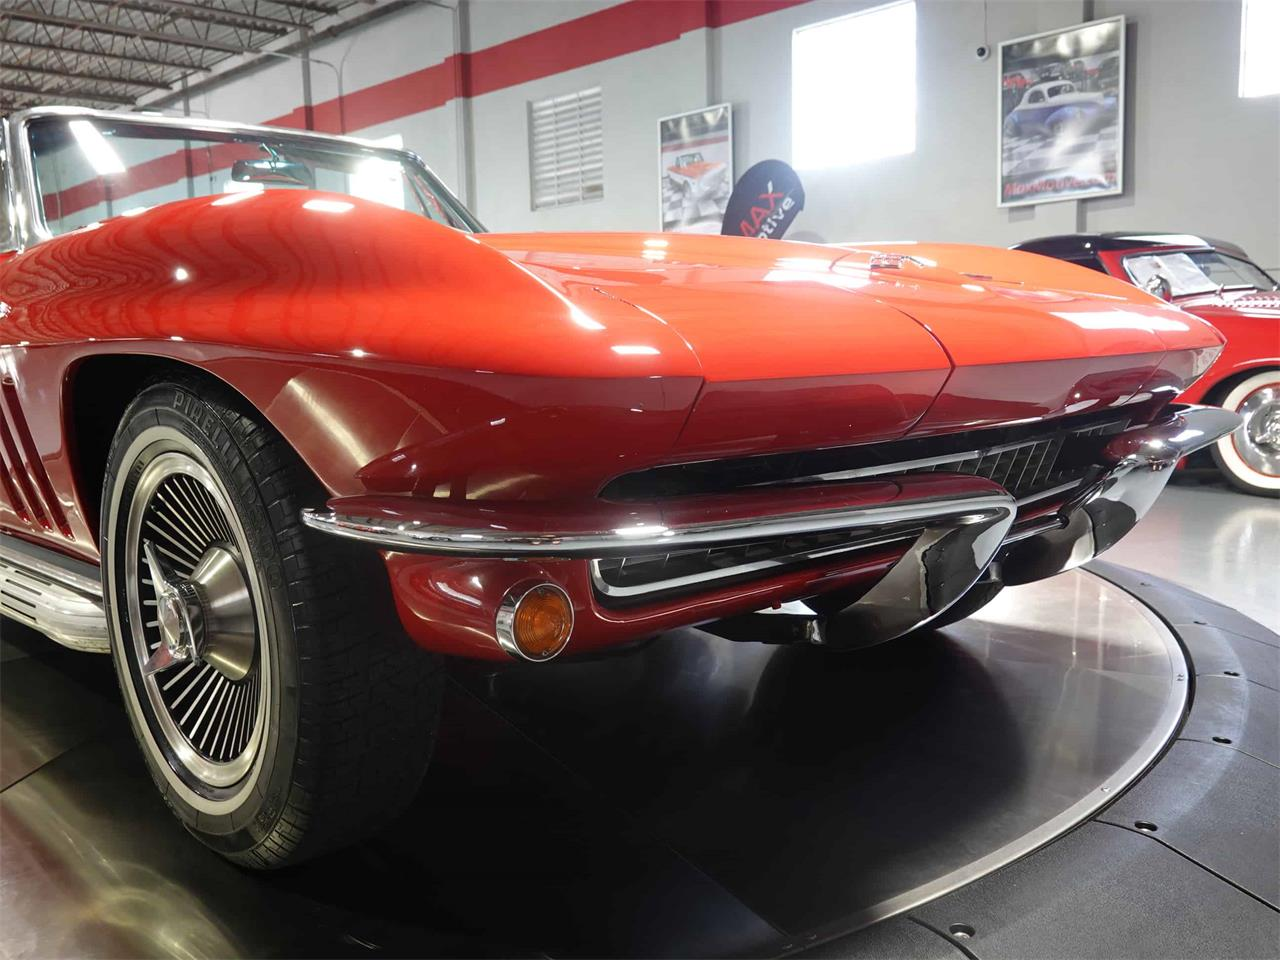 1966 Chevrolet Corvette (CC-1411616) for sale in Pittsburgh, Pennsylvania